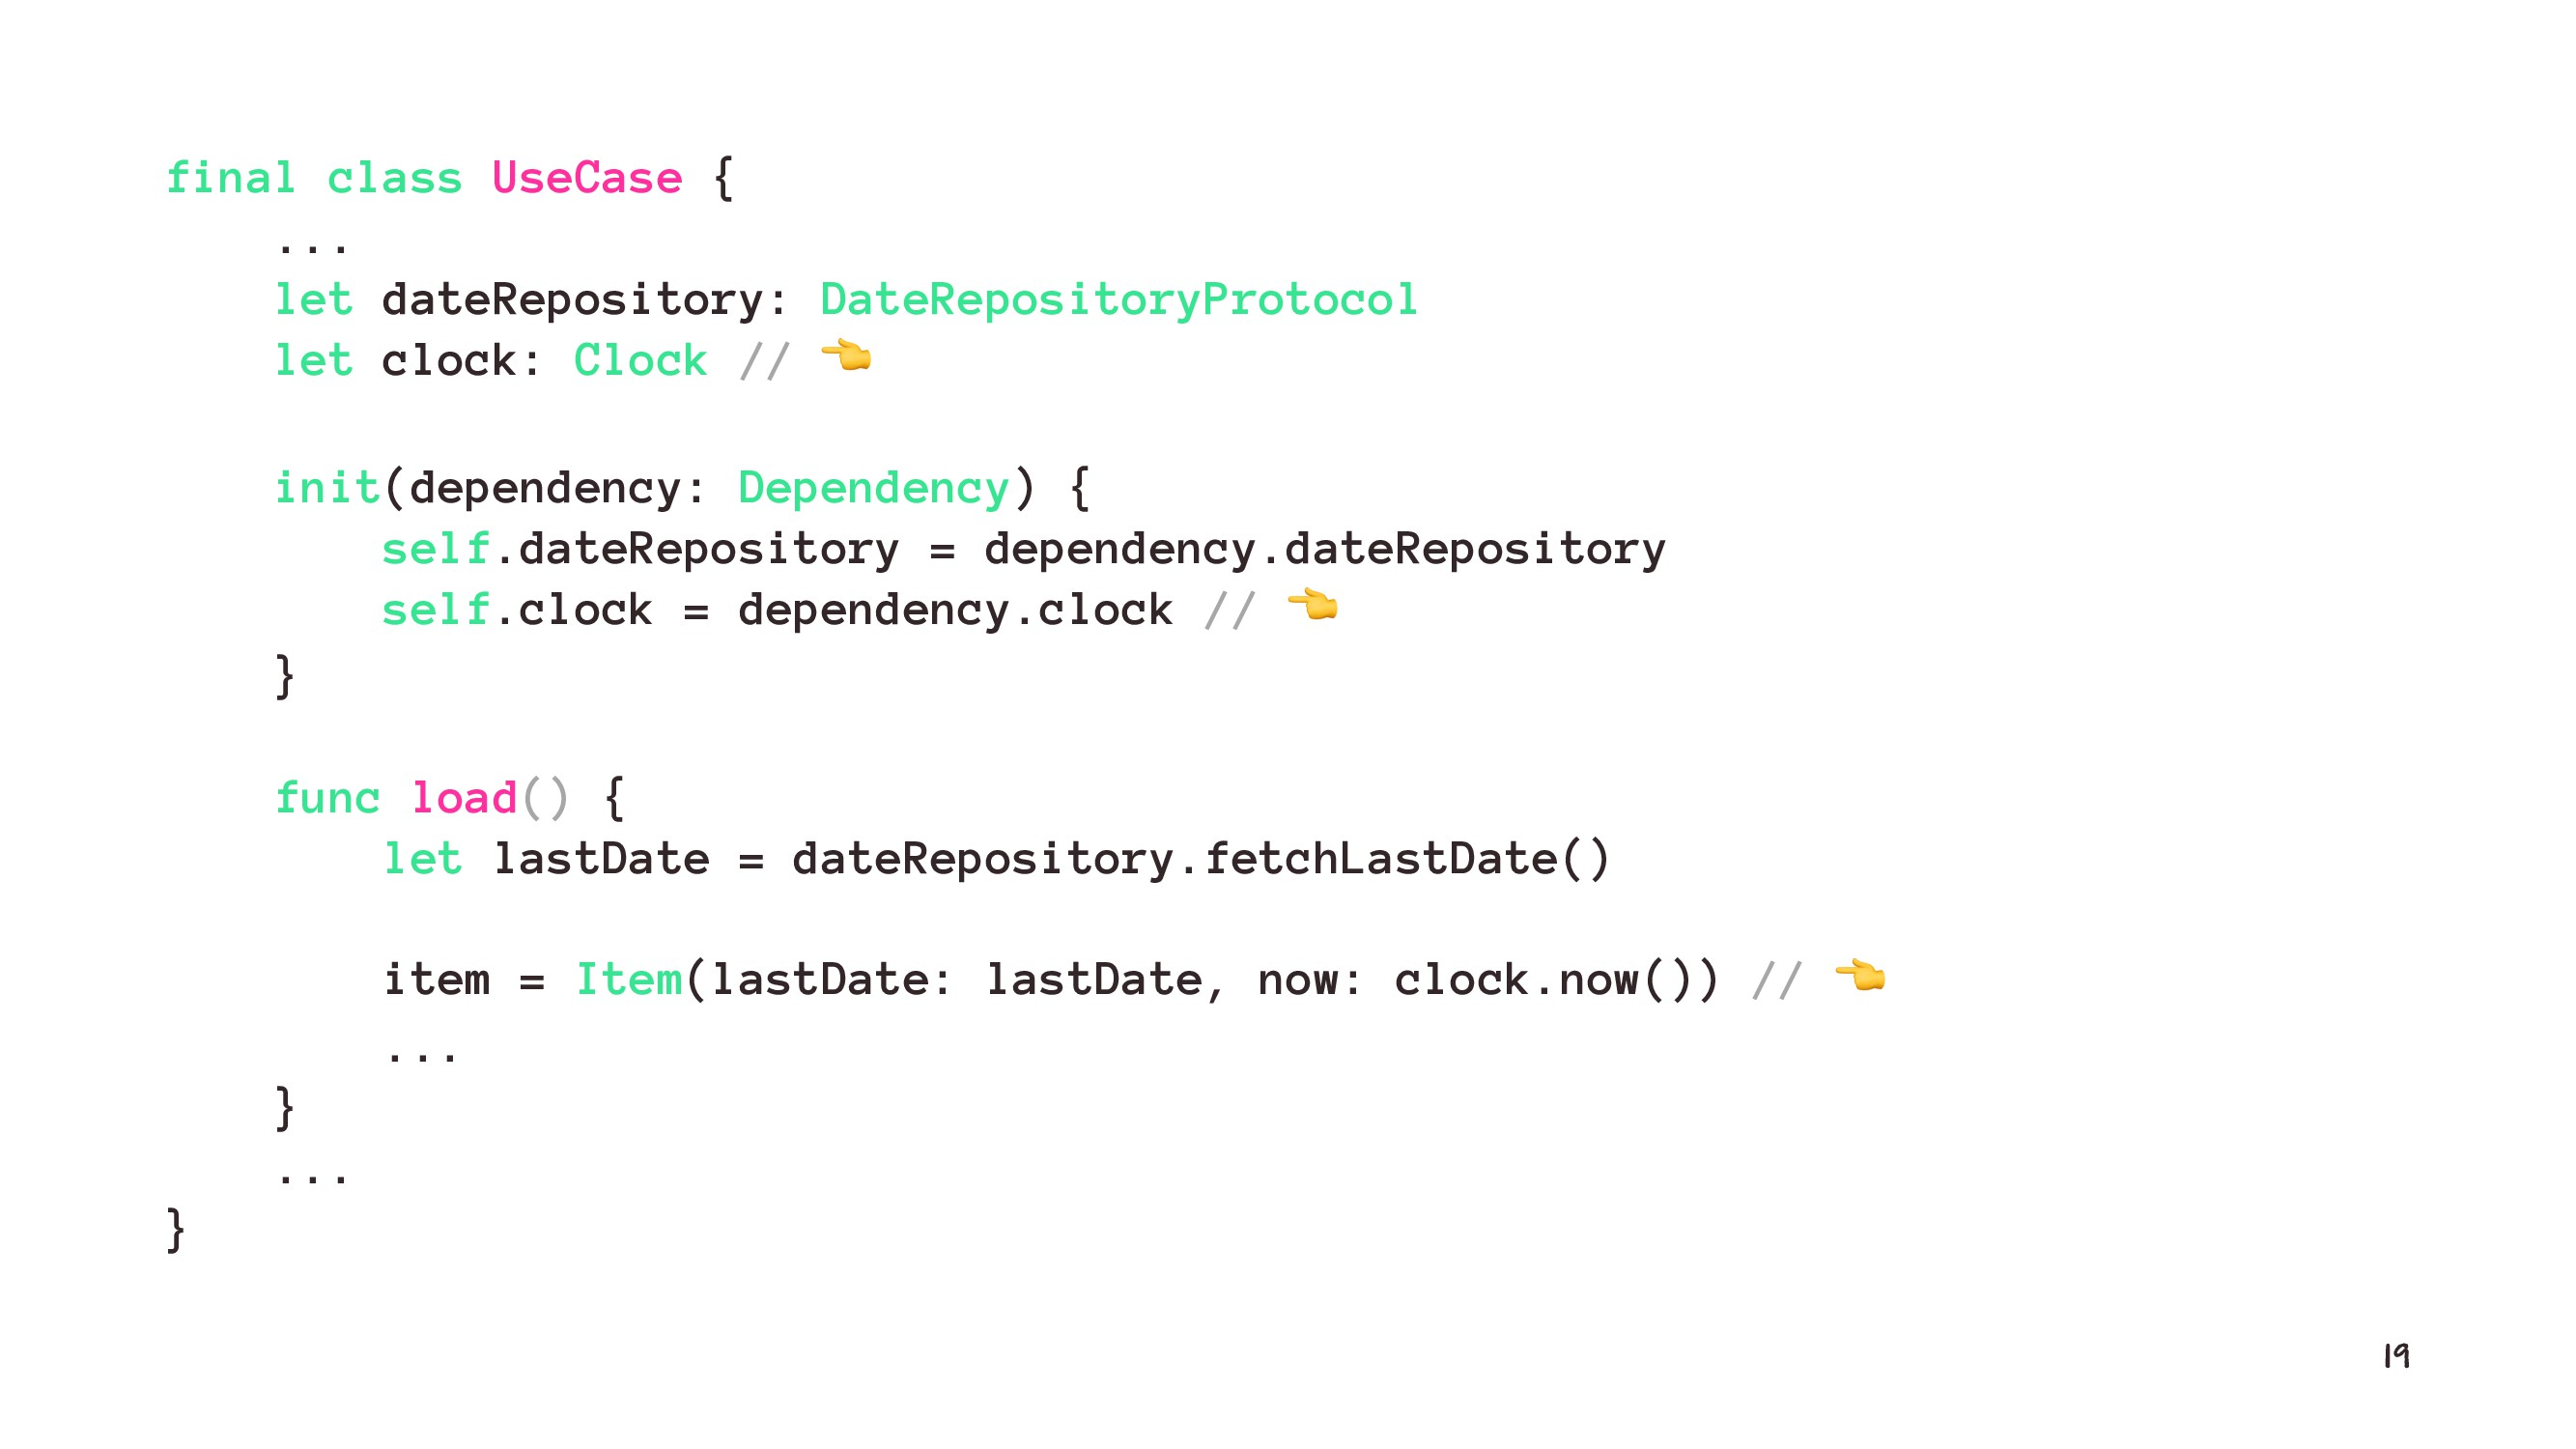 final class UseCase { ... let dateRepository: D...